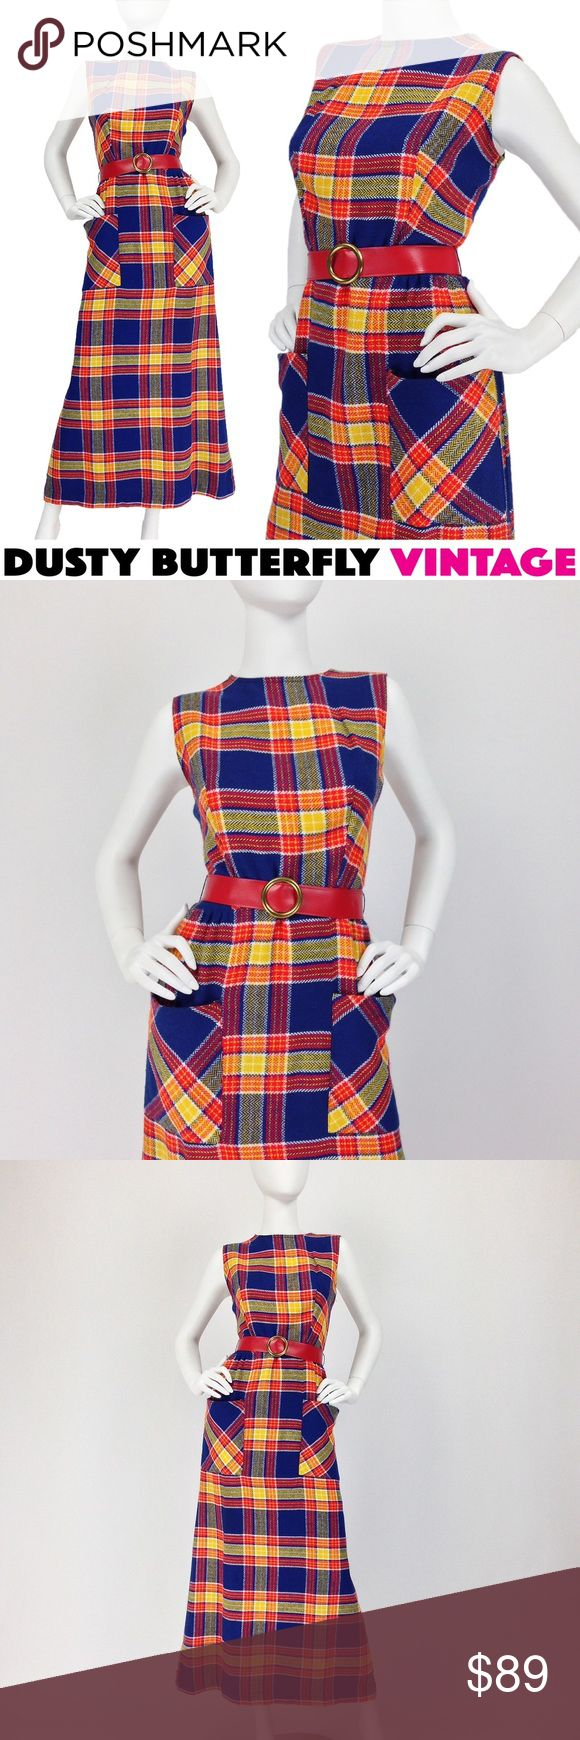 VINTAGE 70s PLAID DRESS Wool MAXI Americana Awesome 'wool' maxi dress in such a classic 70s plaid! W/ big pockets + red vinyl belt it just doesn't get more 70s than this… <3!  •Big front pockets •Original red vinyl belt w round gold-tone buckle •Rear metal zip •100% acrylic (looks & feels like wool) •No brand tag •Very good - excellent vtg condition  Vtg size 11. Best modern fit: M •Bust:37 •Waist:30 •Hips:42 •Length:55  💟Suggested User 💟Top Rated Seller 💟Fast Shipping 👥Instagram…